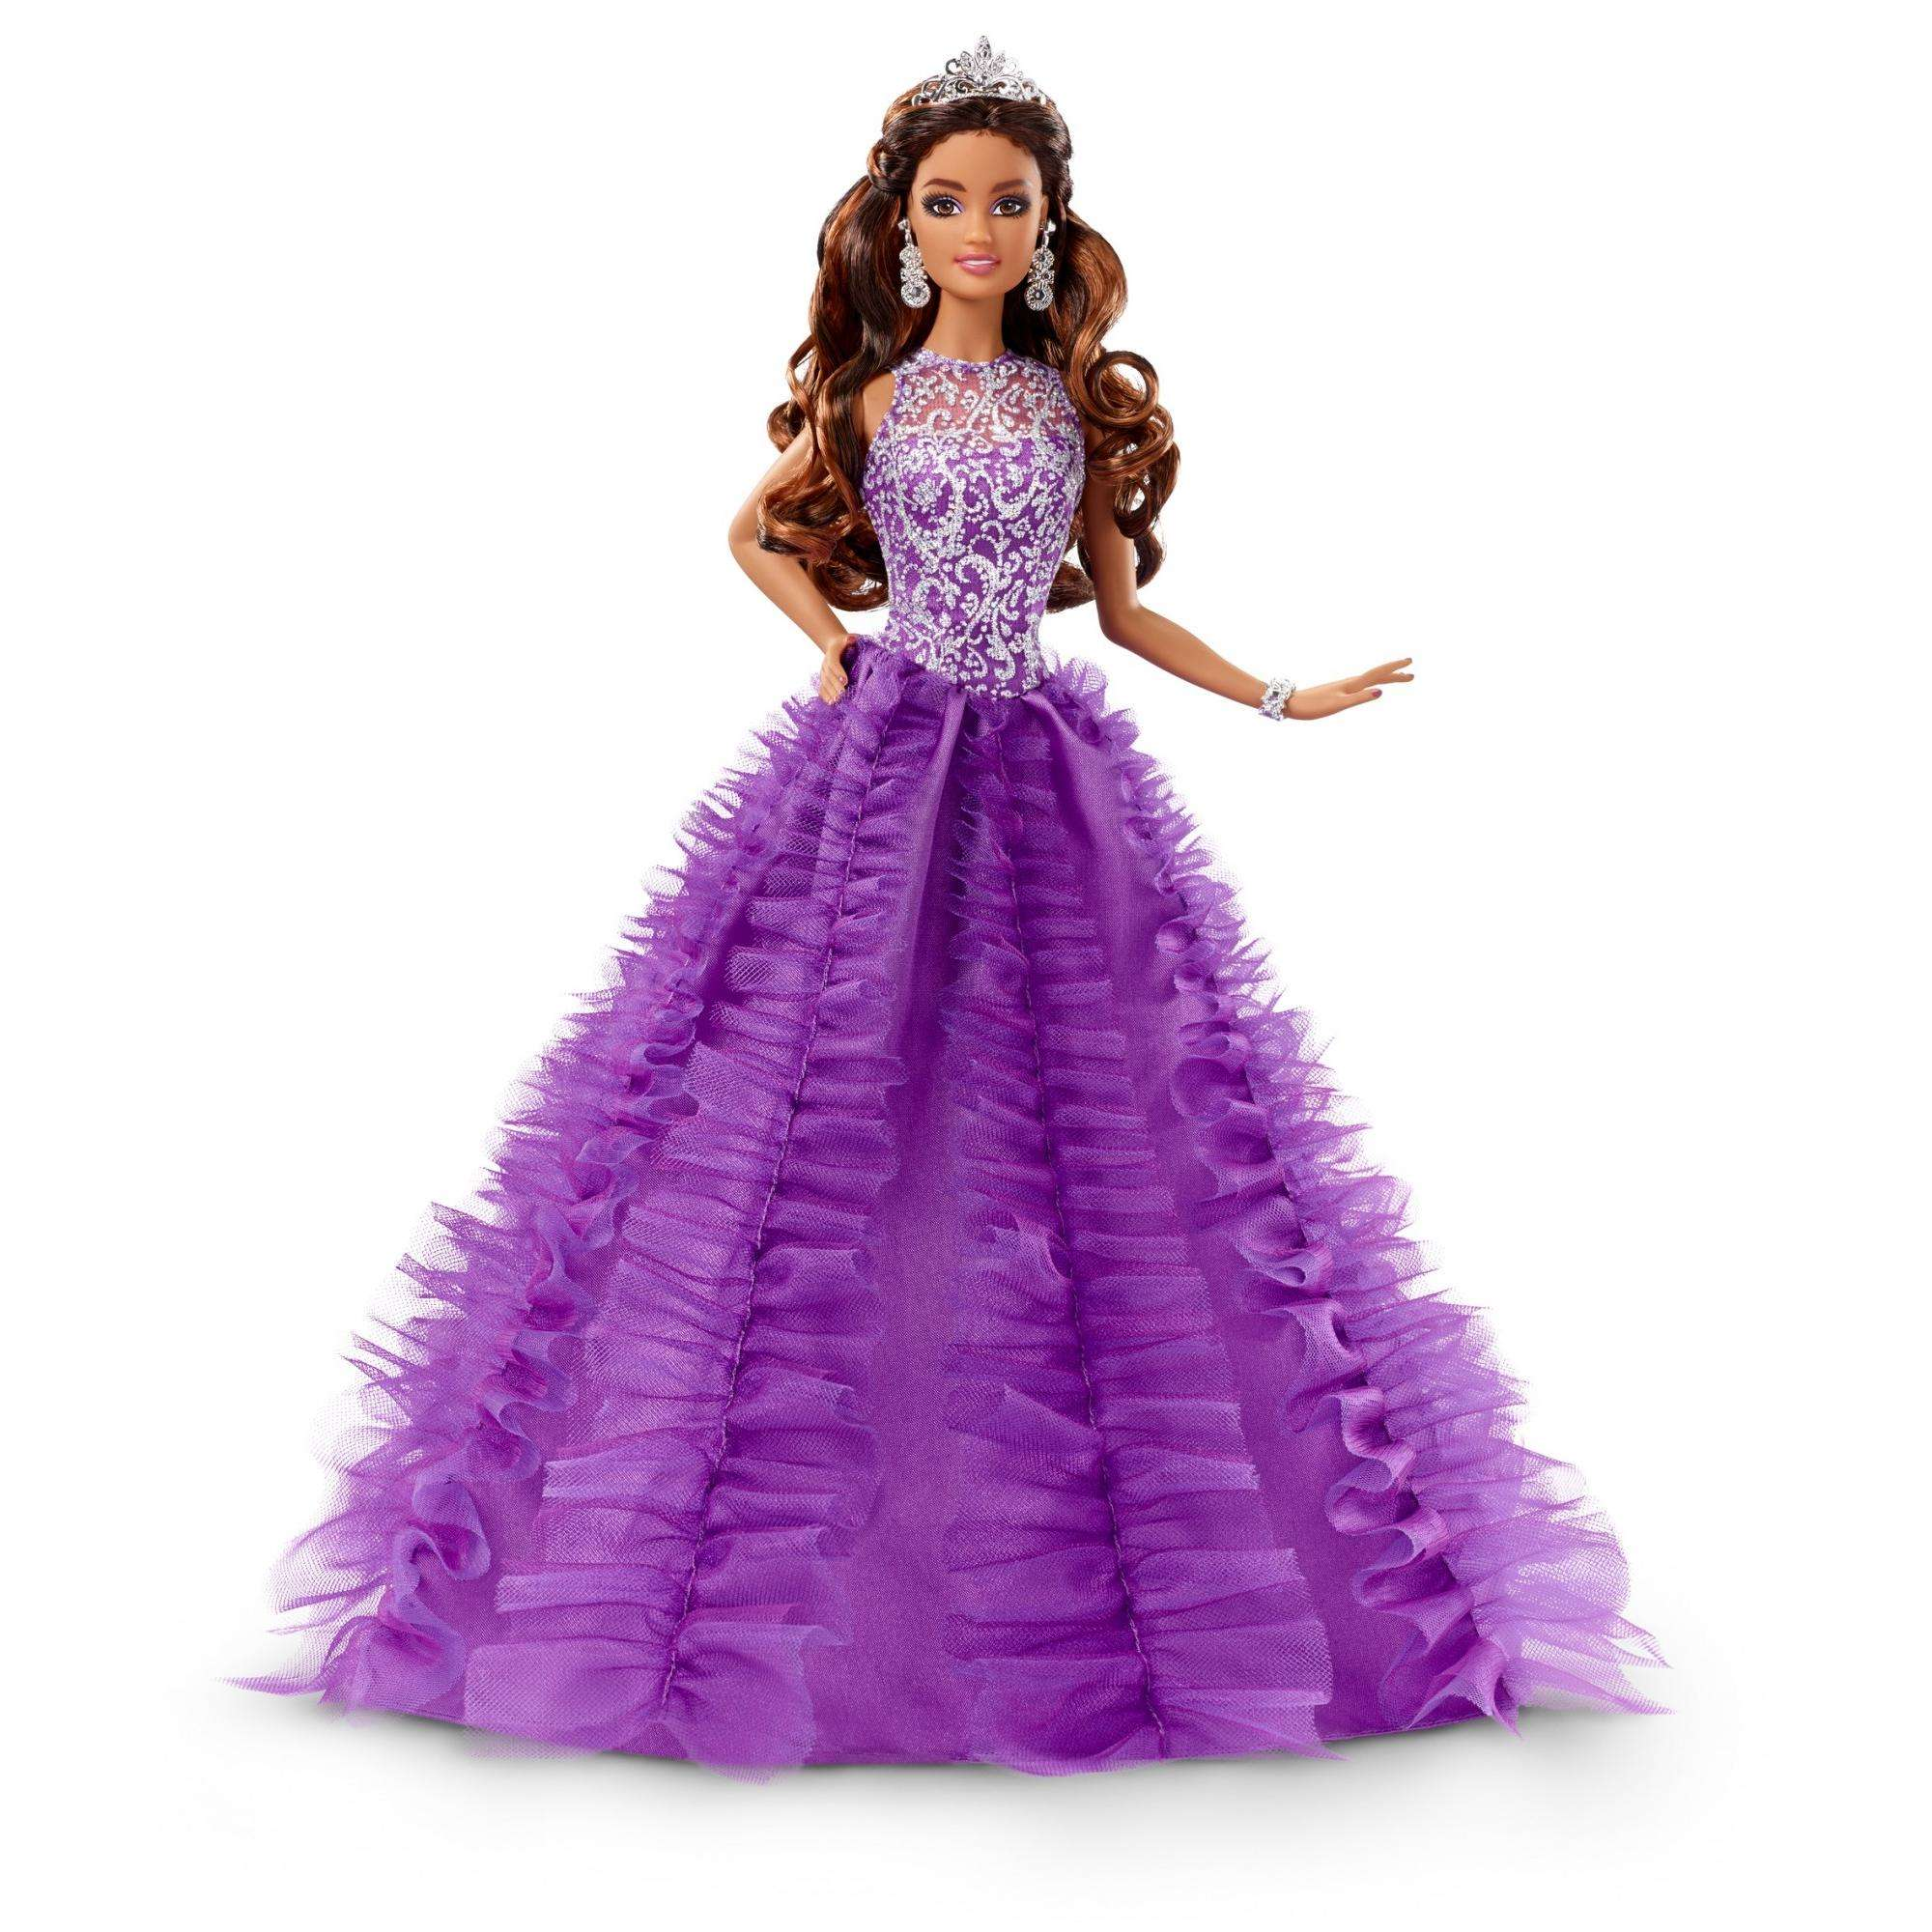 Barbie Collector Quinceanera Doll by MATTEL INC.